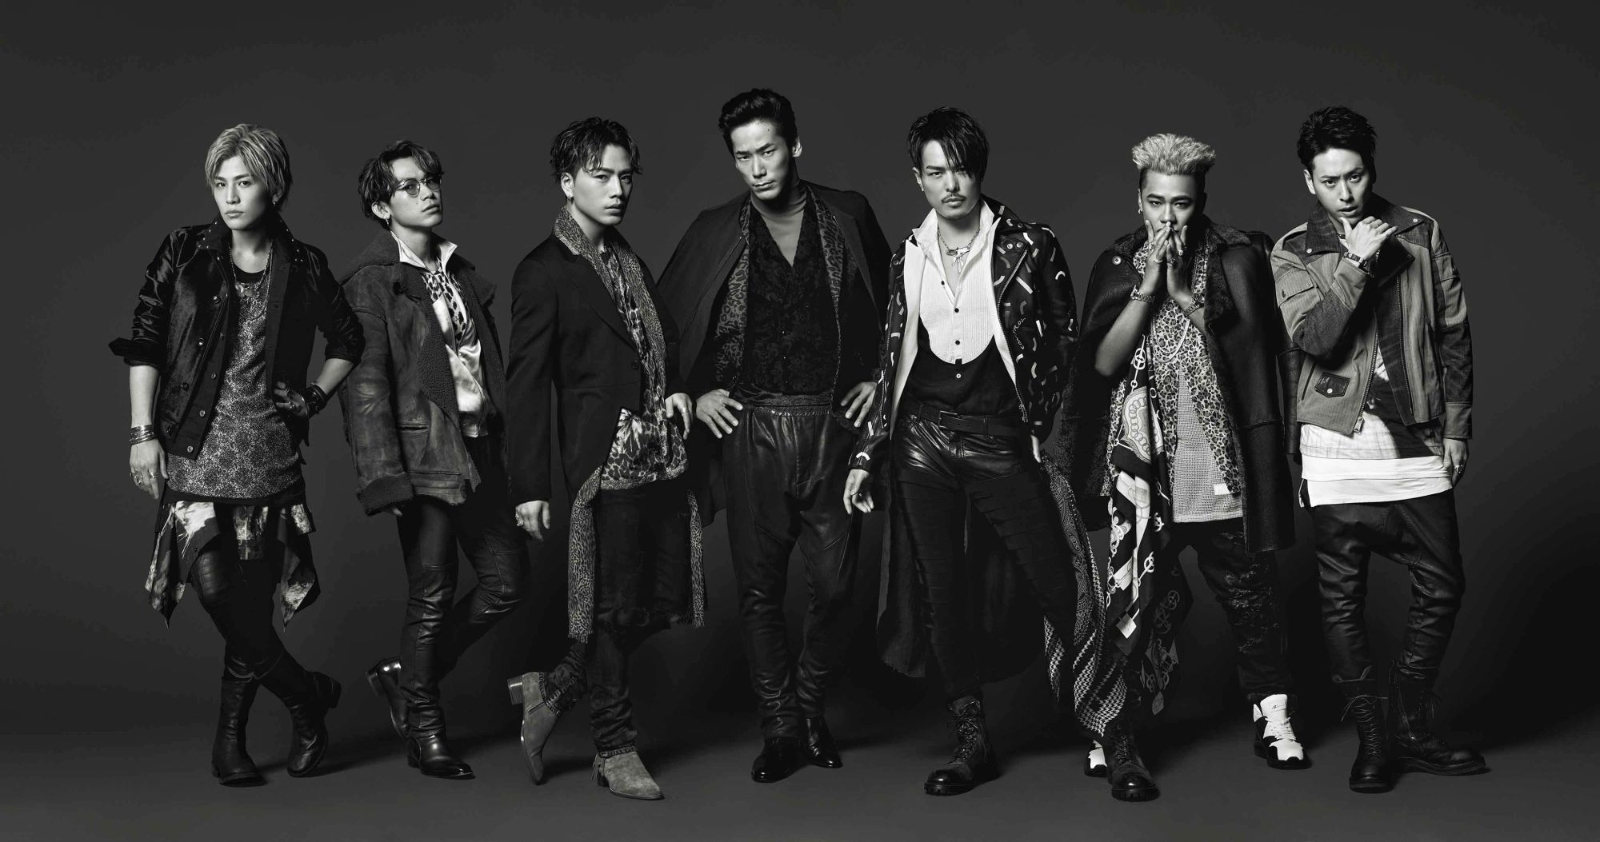 楽天ブックス The Jsb Legacy 初回限定盤 Cd 2dvd 三代目 J Soul Brothers From Exile Tribe Cd